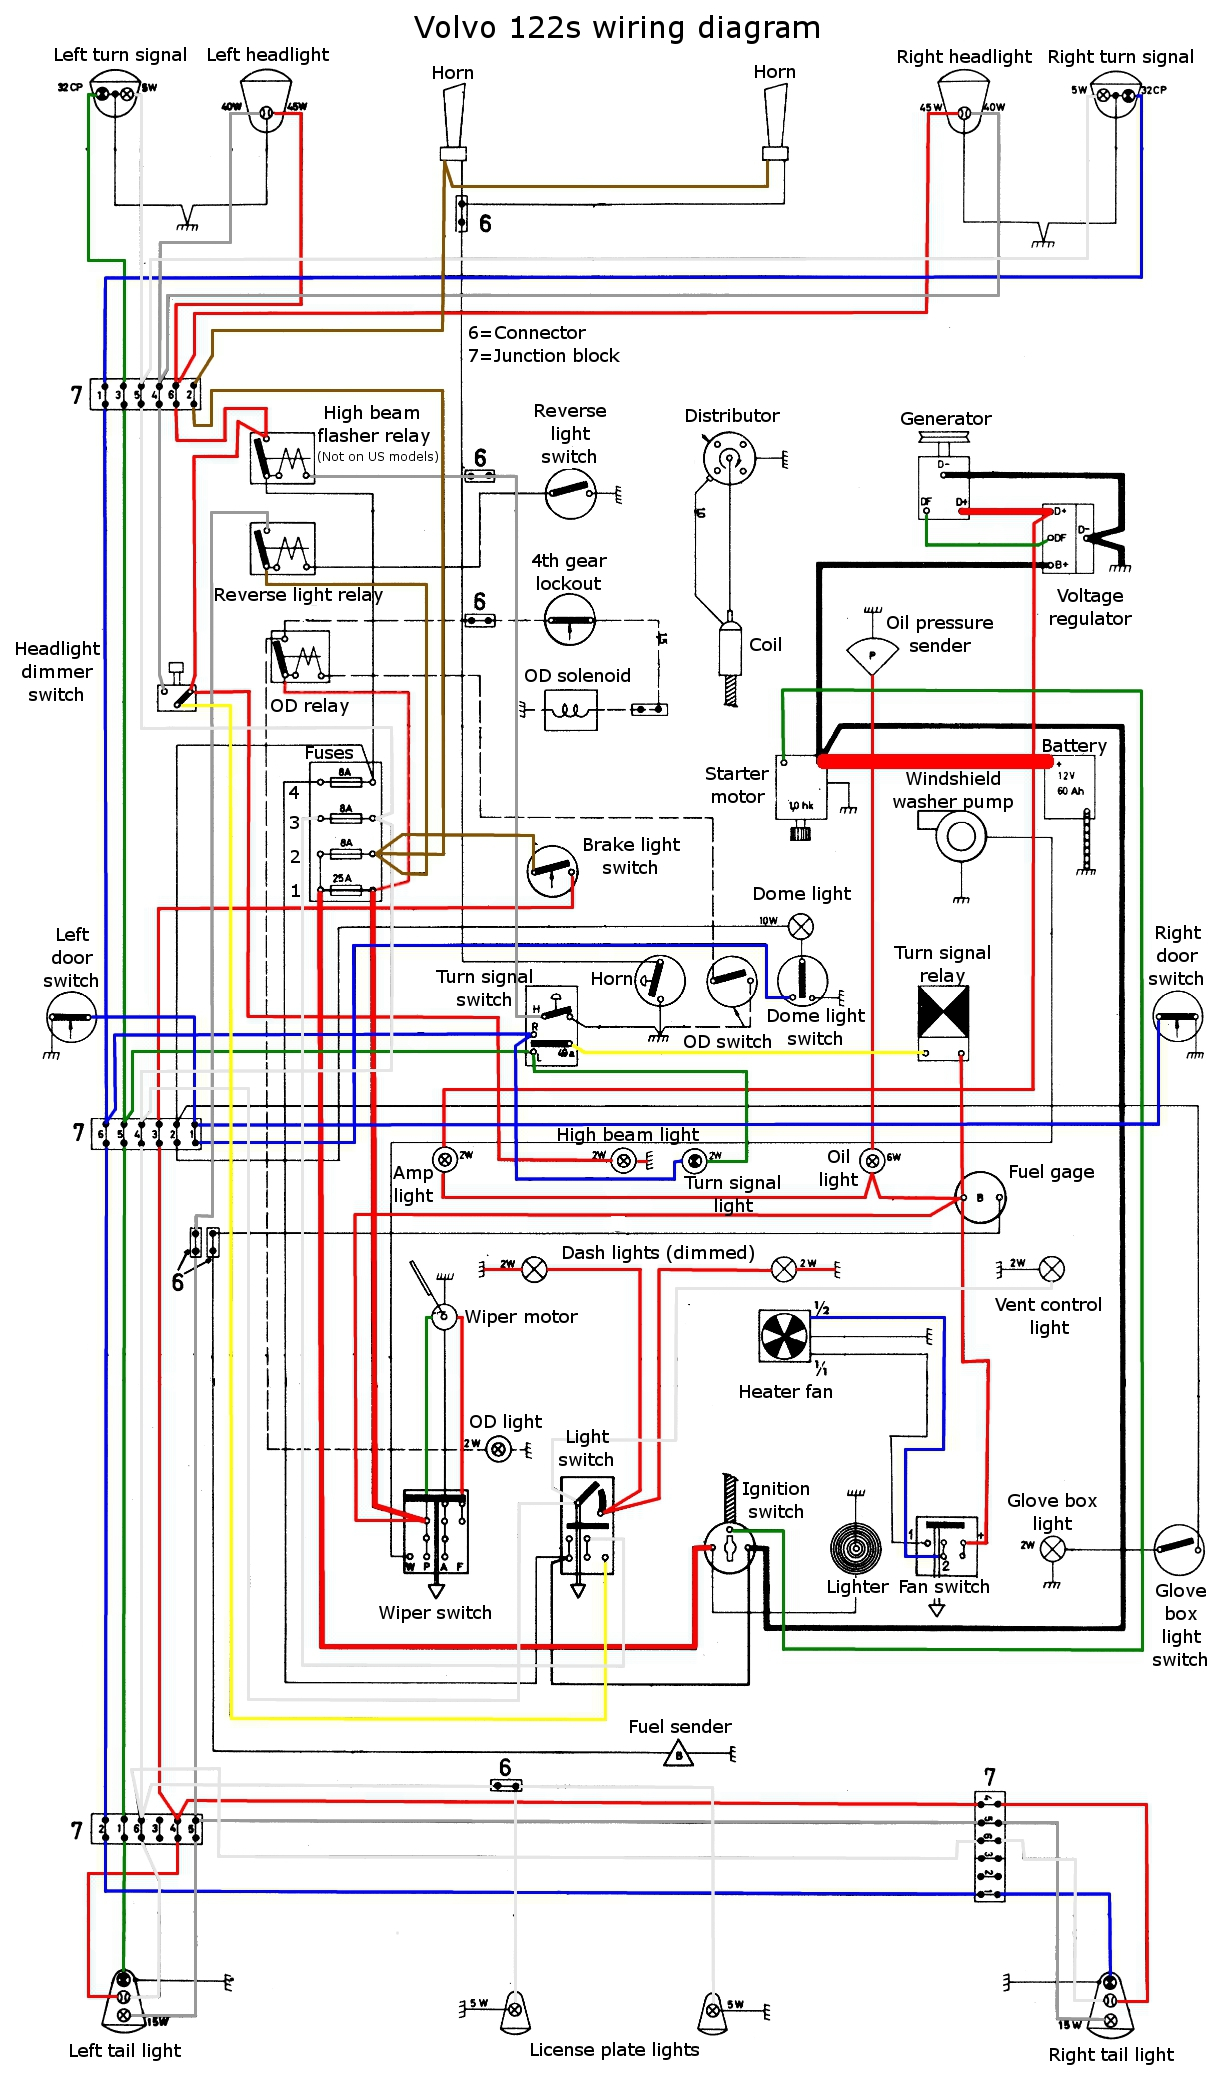 Volvo Wiring Diagram - Wiring Diagram Dash on 1998 land rover discovery wiring diagram, 1995 volvo 850 wiring diagram, 2005 volvo xc90 wiring diagram, 2006 volvo xc90 wiring diagram, 1998 pontiac grand am wiring diagram, 1995 volvo 960 wiring diagram, 1998 bmw z3 wiring diagram, 1998 oldsmobile intrigue wiring diagram, 1990 volvo 740 wiring diagram, 2004 volvo xc90 wiring diagram, 1998 cadillac seville wiring diagram, 1991 volvo 740 wiring diagram, 1999 volvo s80 fuse box diagram, 2004 volvo s60 fuse diagram, volvo s70 wiring diagram, 1998 nissan sentra wiring diagram, 1998 nissan pickup wiring diagram, 1998 chevrolet suburban wiring diagram, 1998 dodge intrepid wiring diagram, 2003 volvo xc90 wiring diagram,